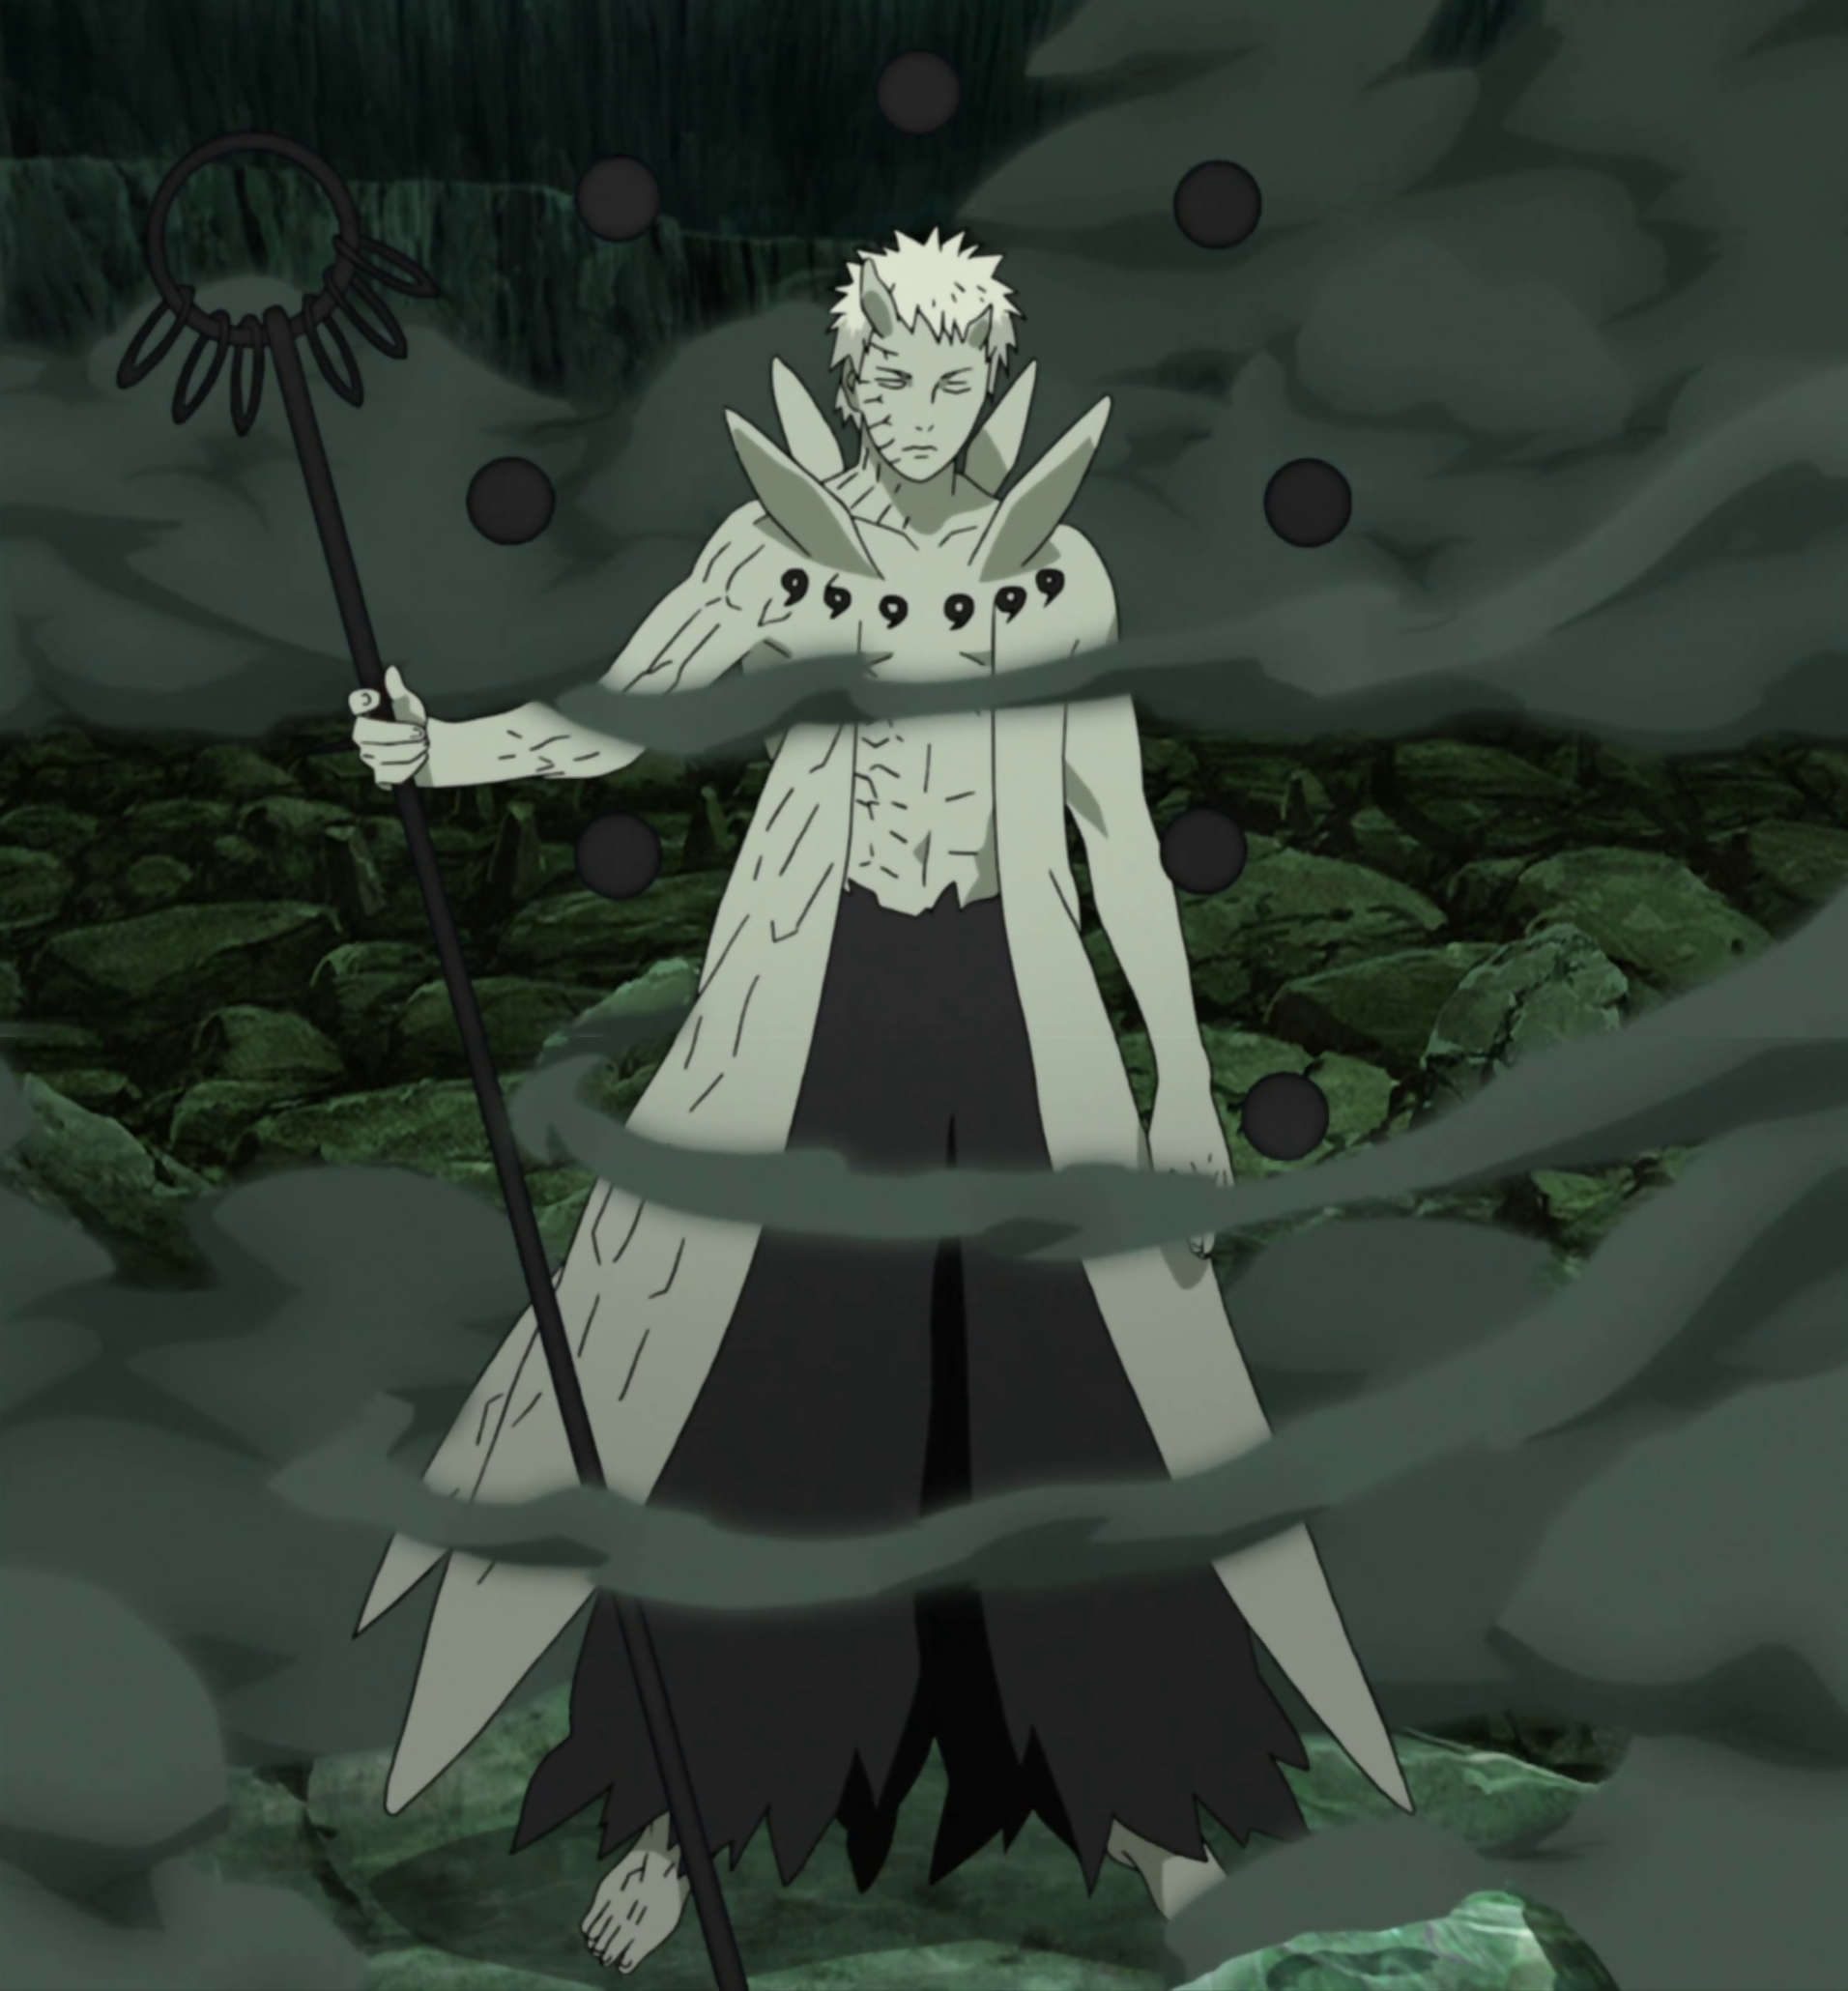 Anime Characters Born On June 8 : Image seconde transformation d obito naruto wiki